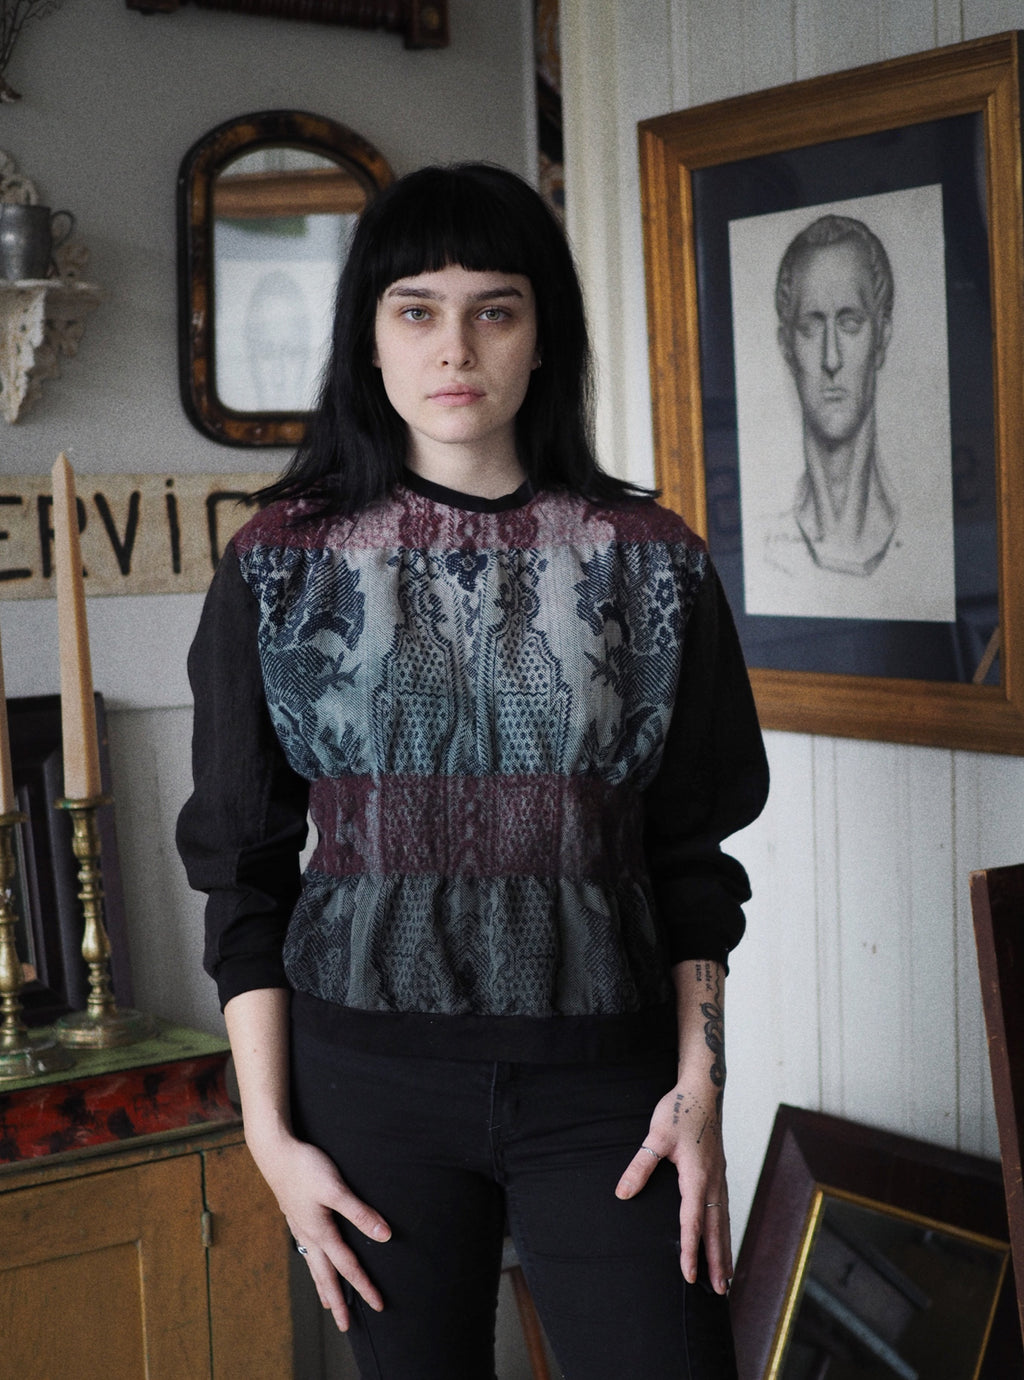 felted waist Lincoln sweatshirt